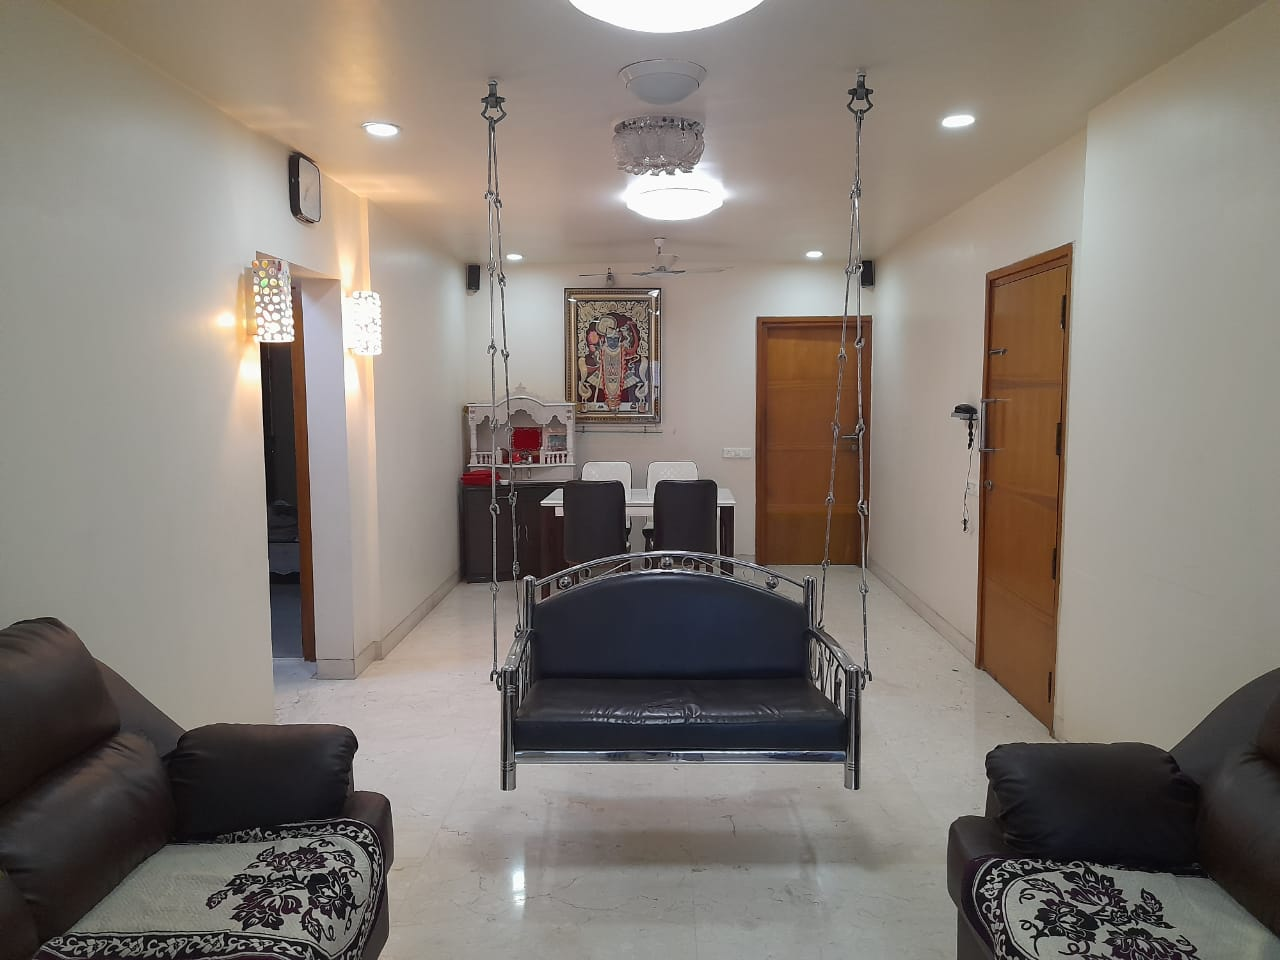 2 Bhk for Rent in Grant Road West @ 1.20 Lac